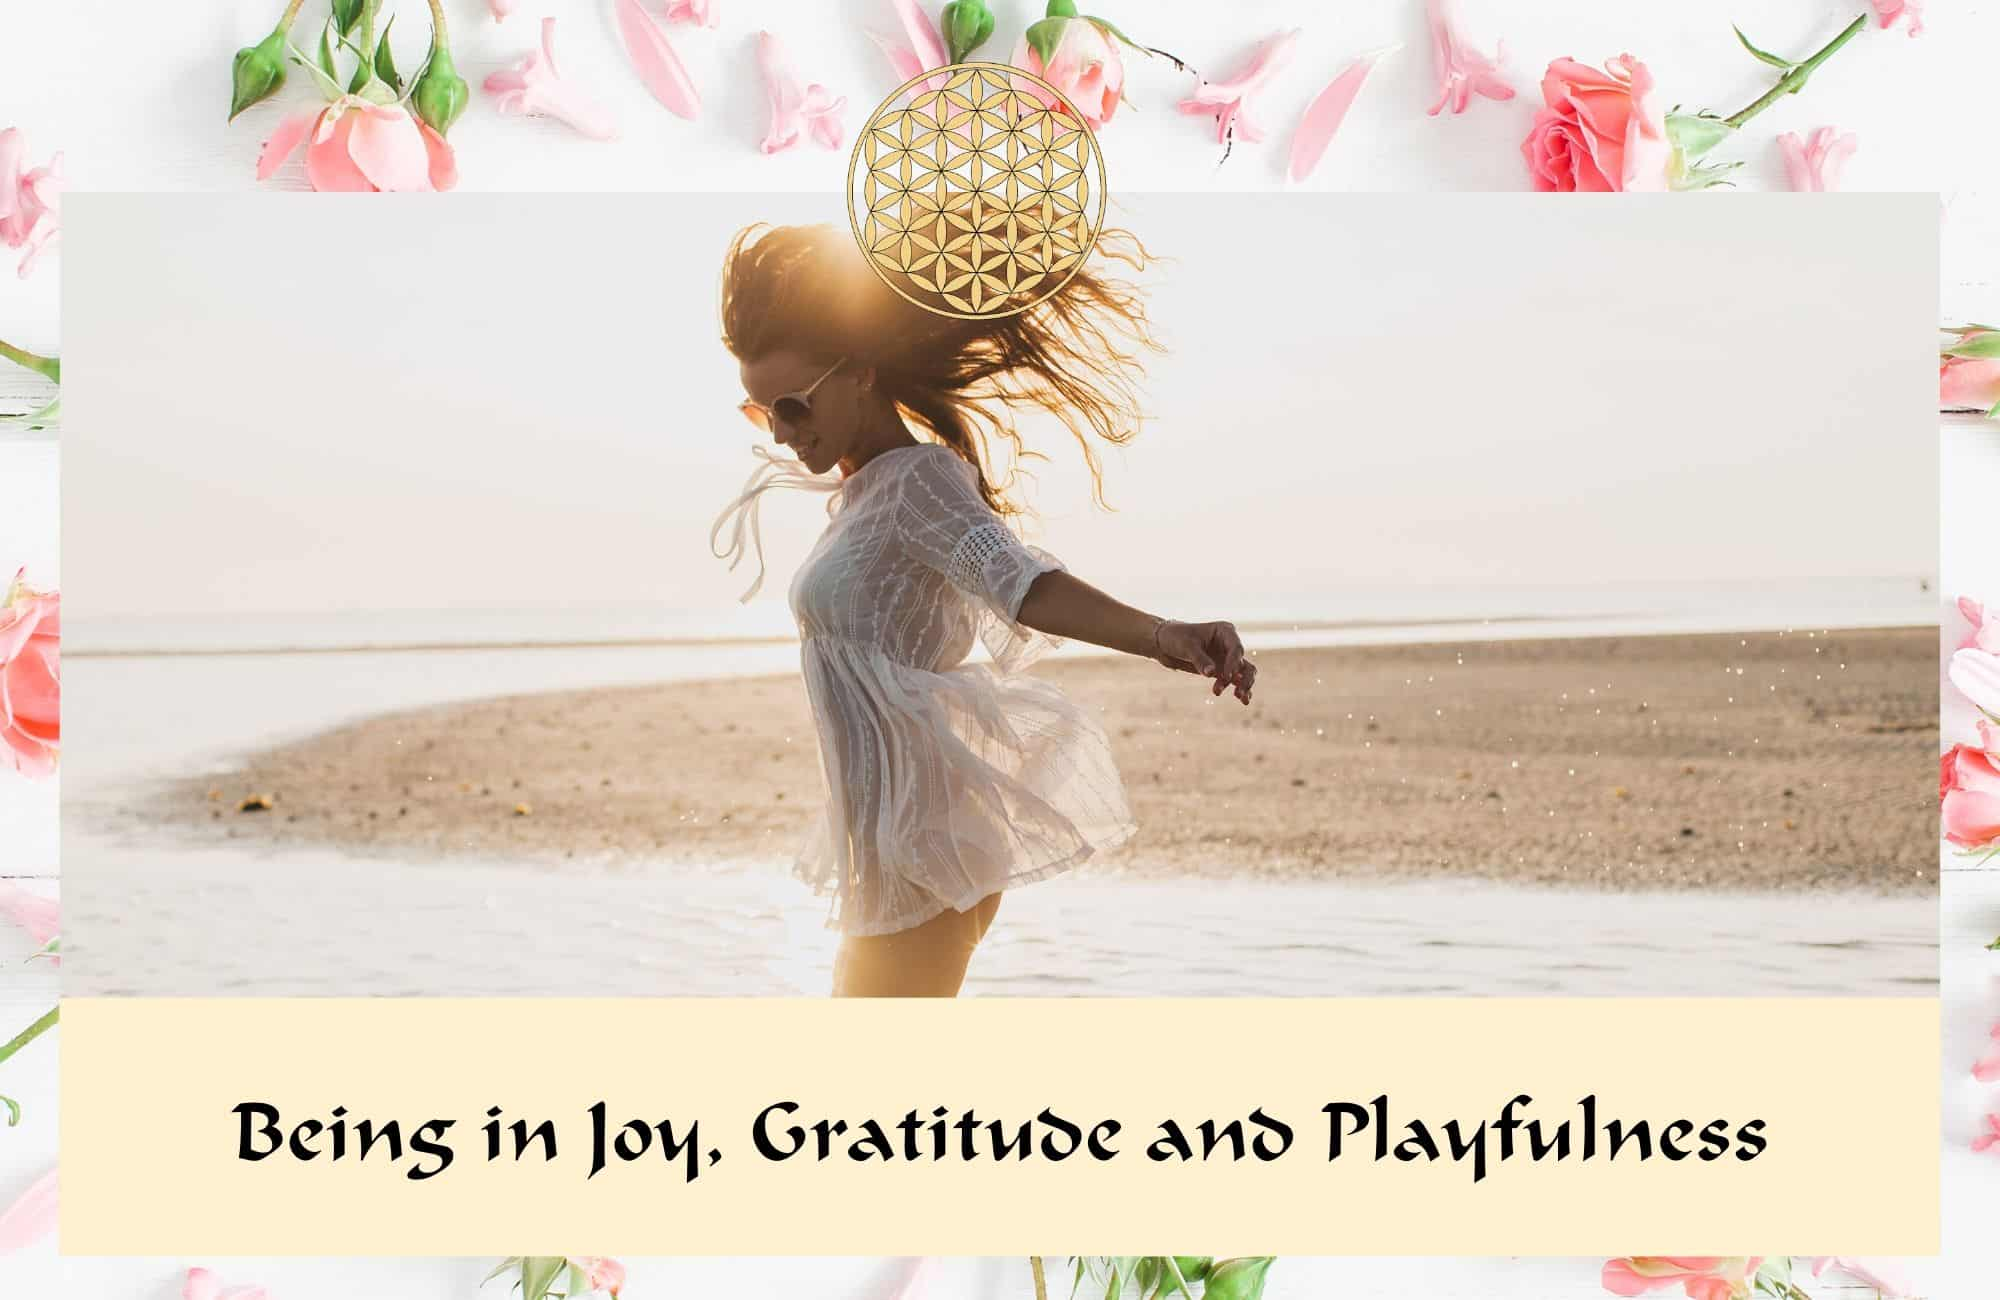 Being in joy, gratitude, and playfulness